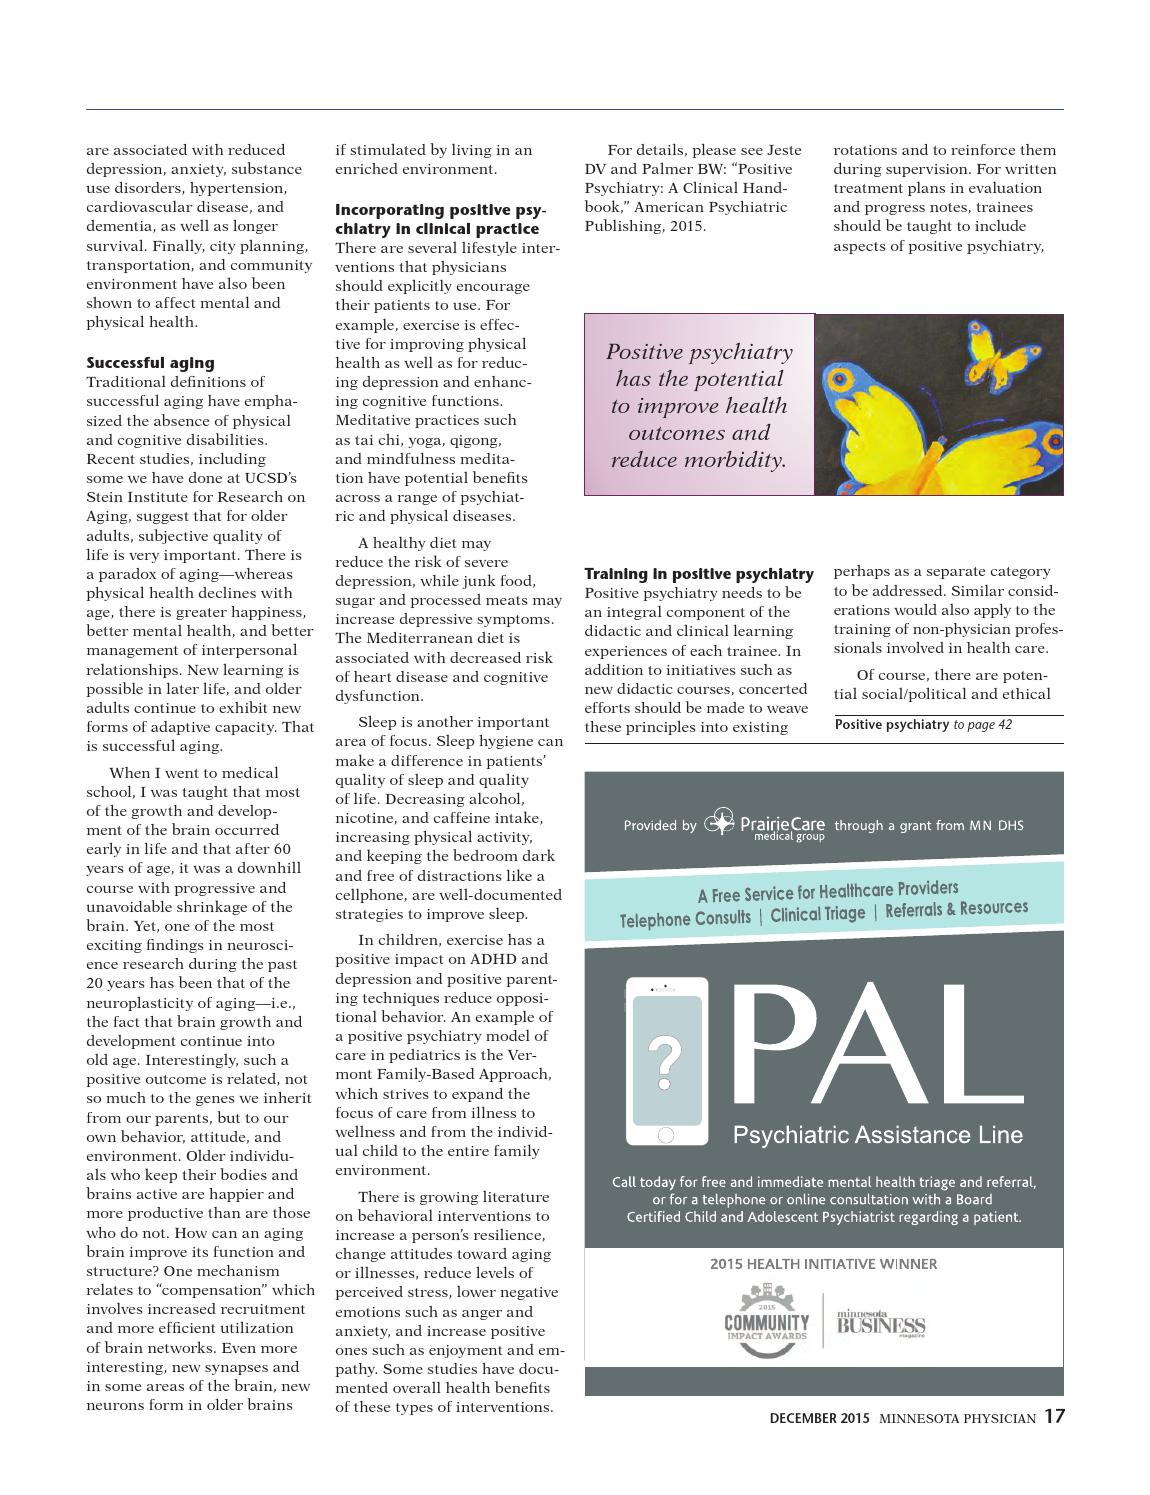 MN Physician Dec 2015 by Minnesota Physician Publishing - issuu